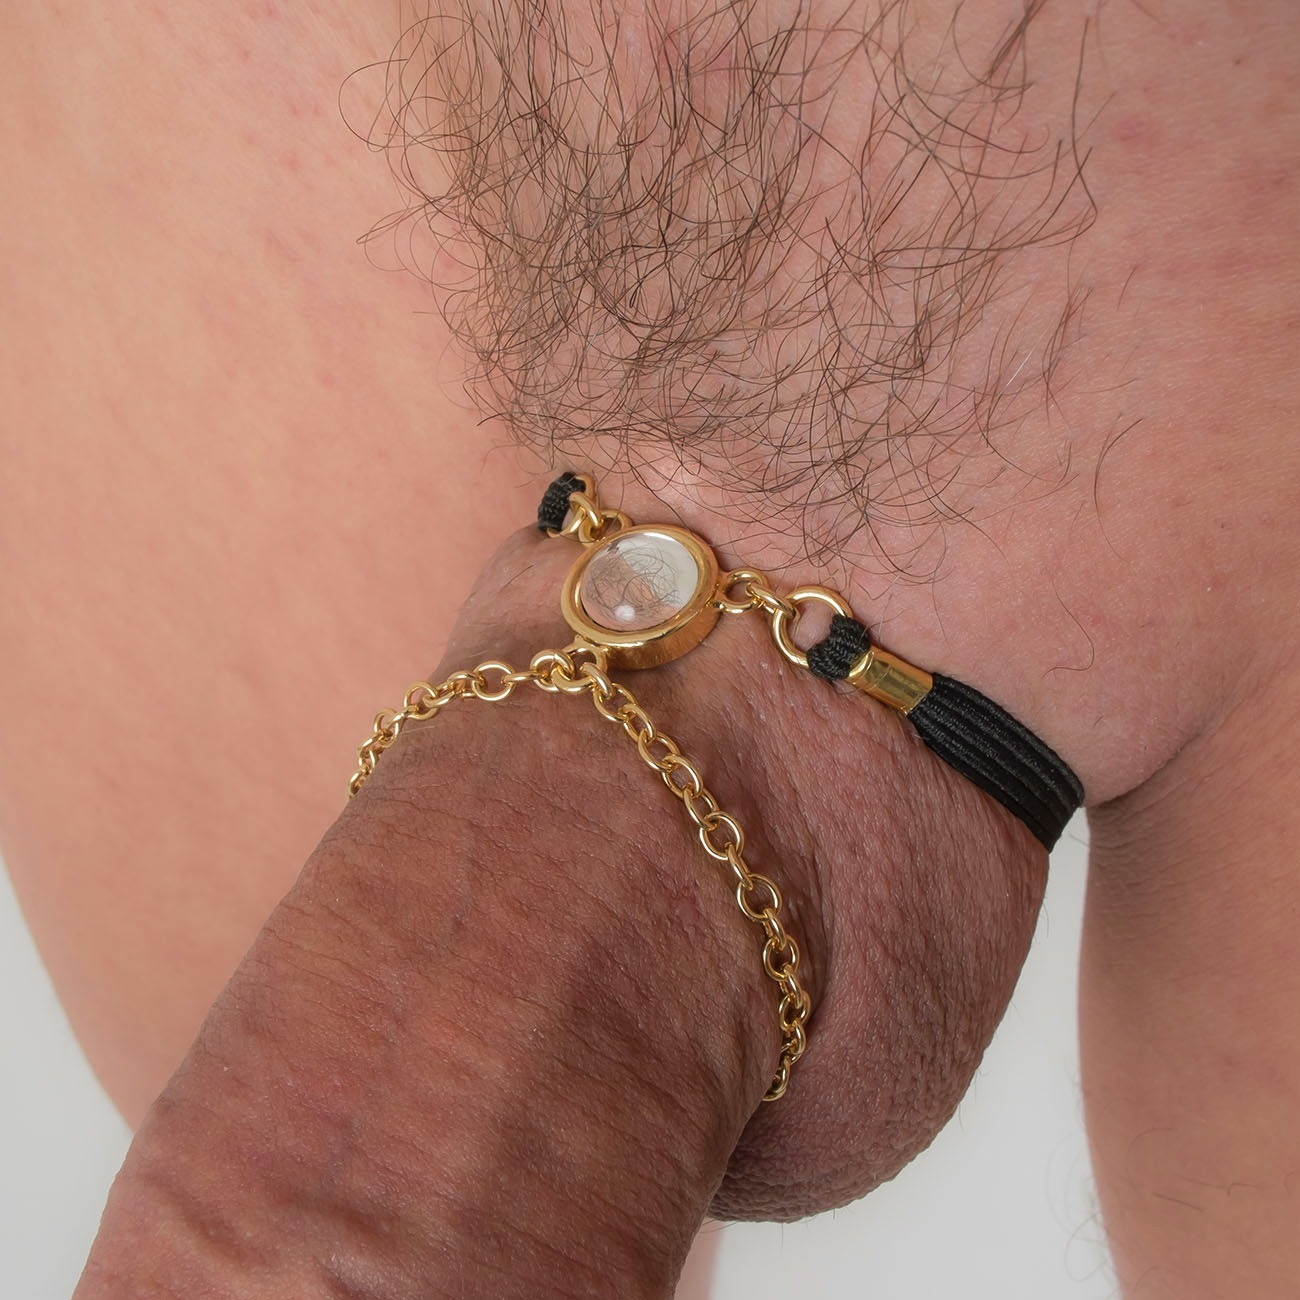 Iced Erotic Erecting Penis Necklace